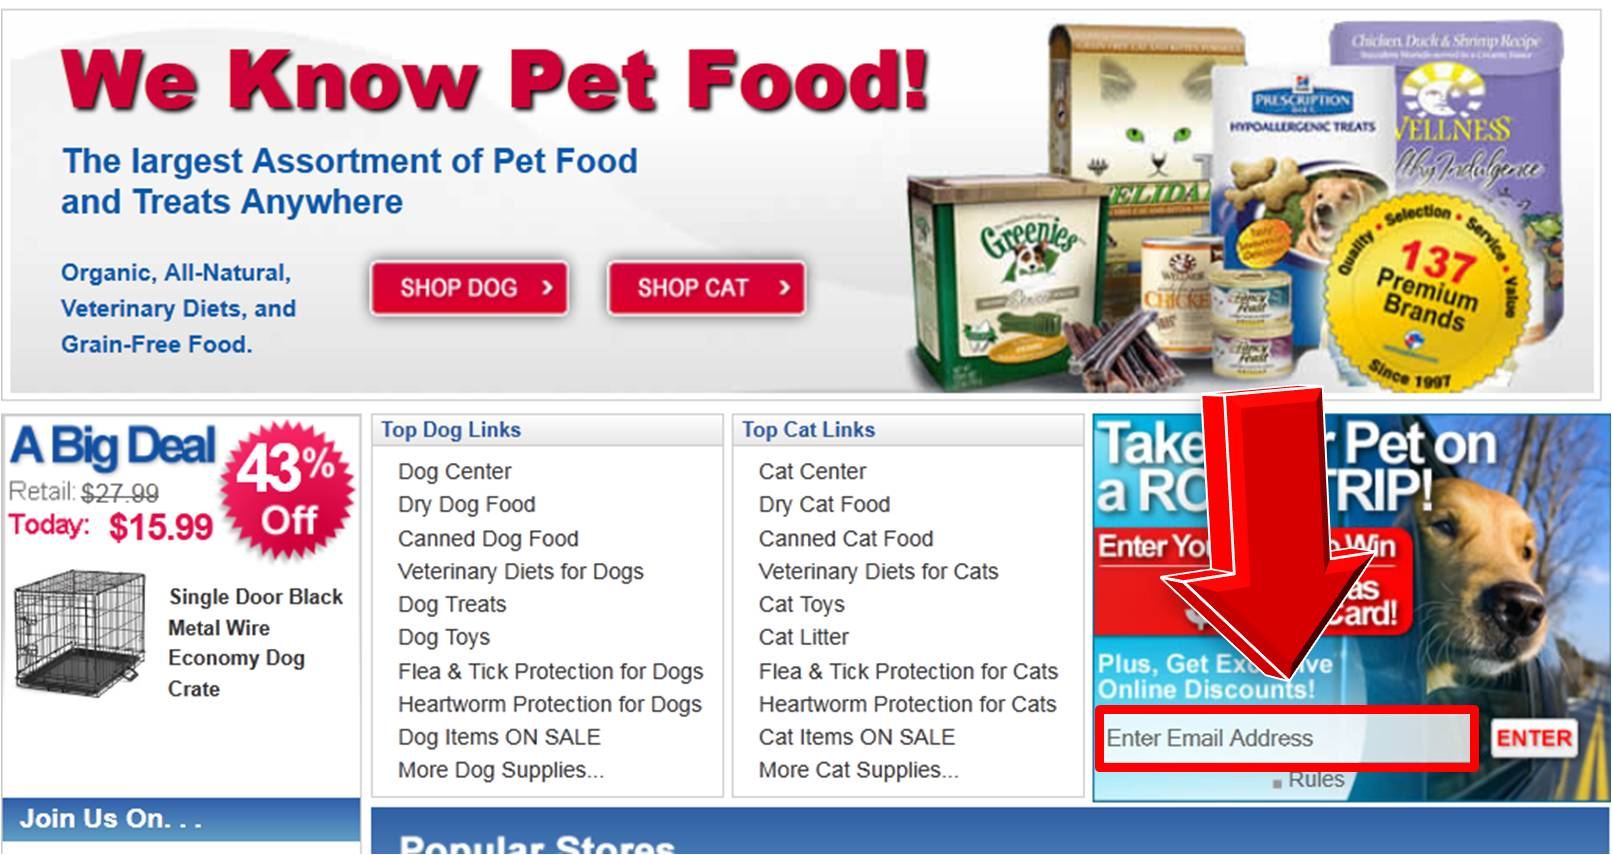 Joe's pet meds coupons codes